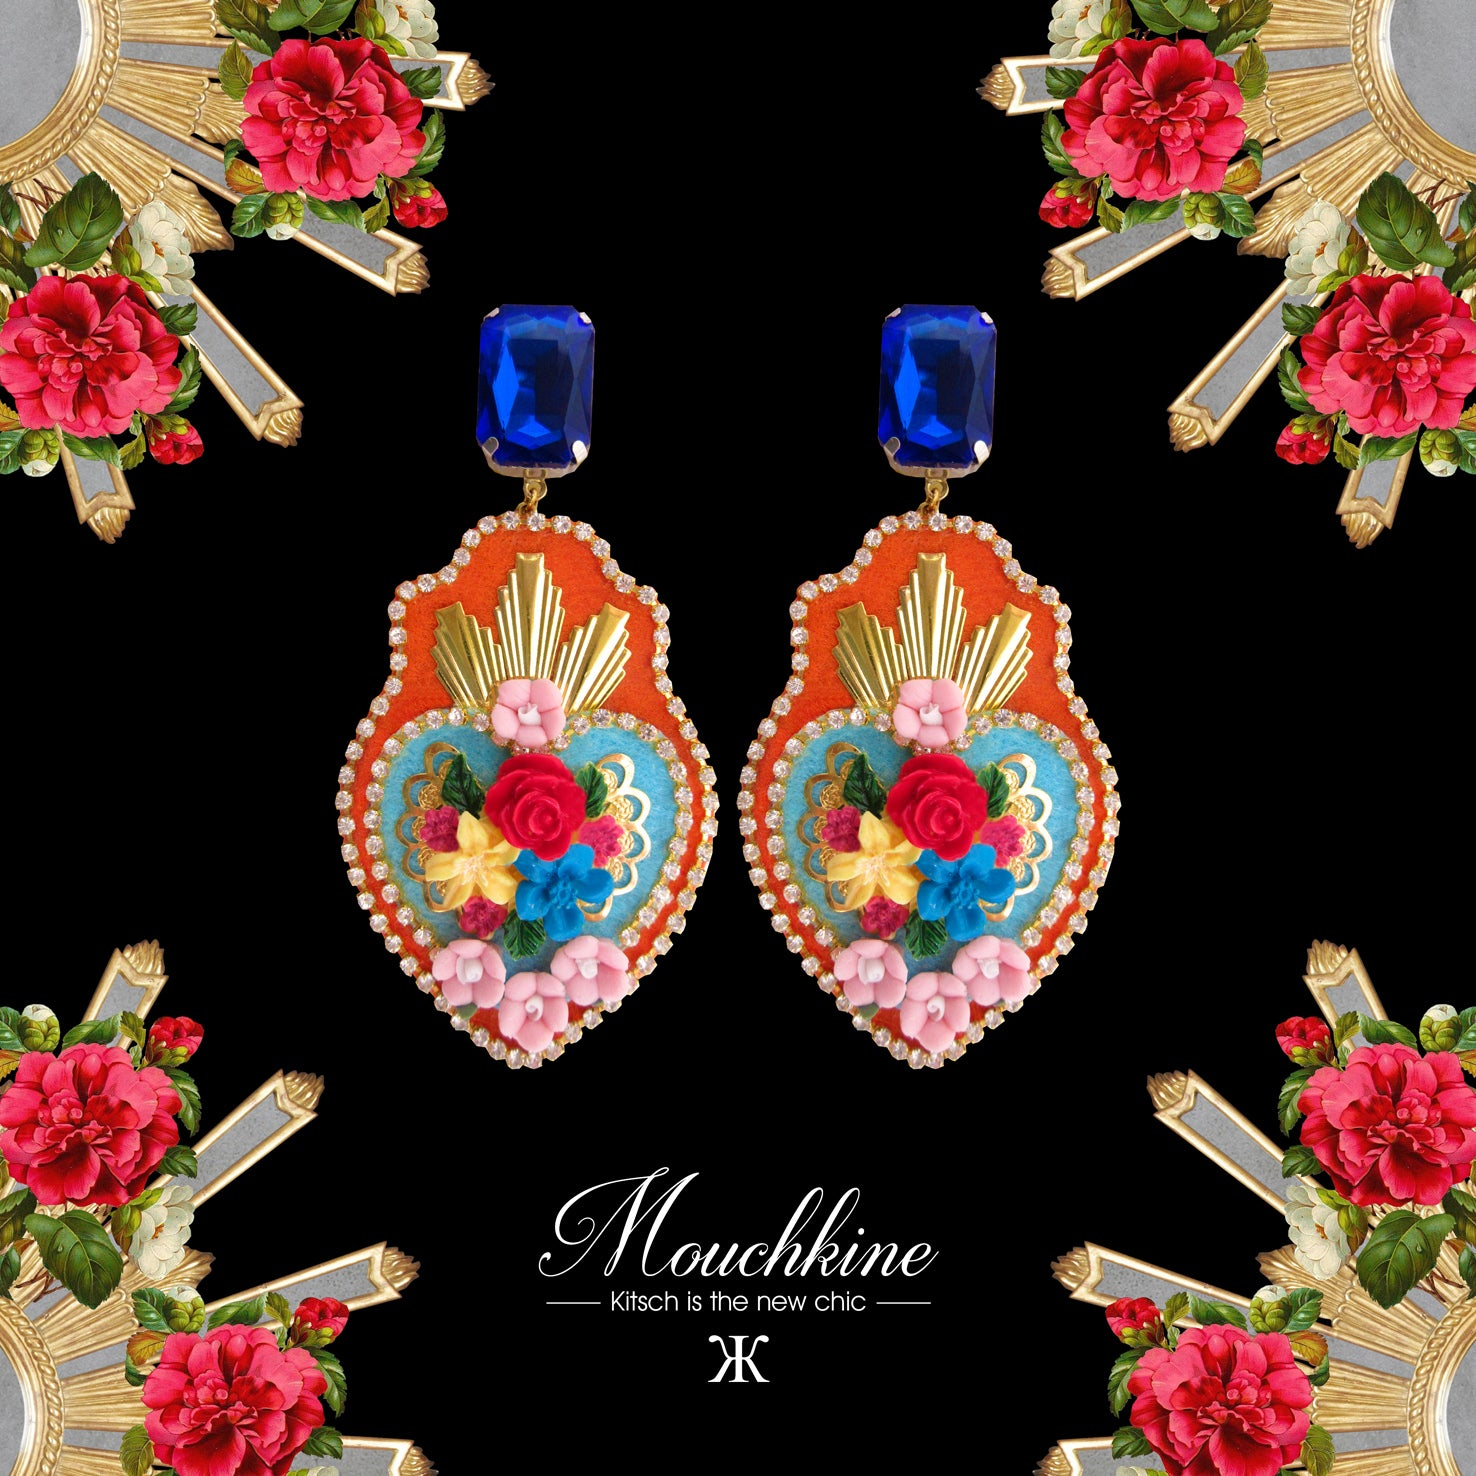 Mouchkine Jewelry luxury floral couture handmade exvoto earrings.